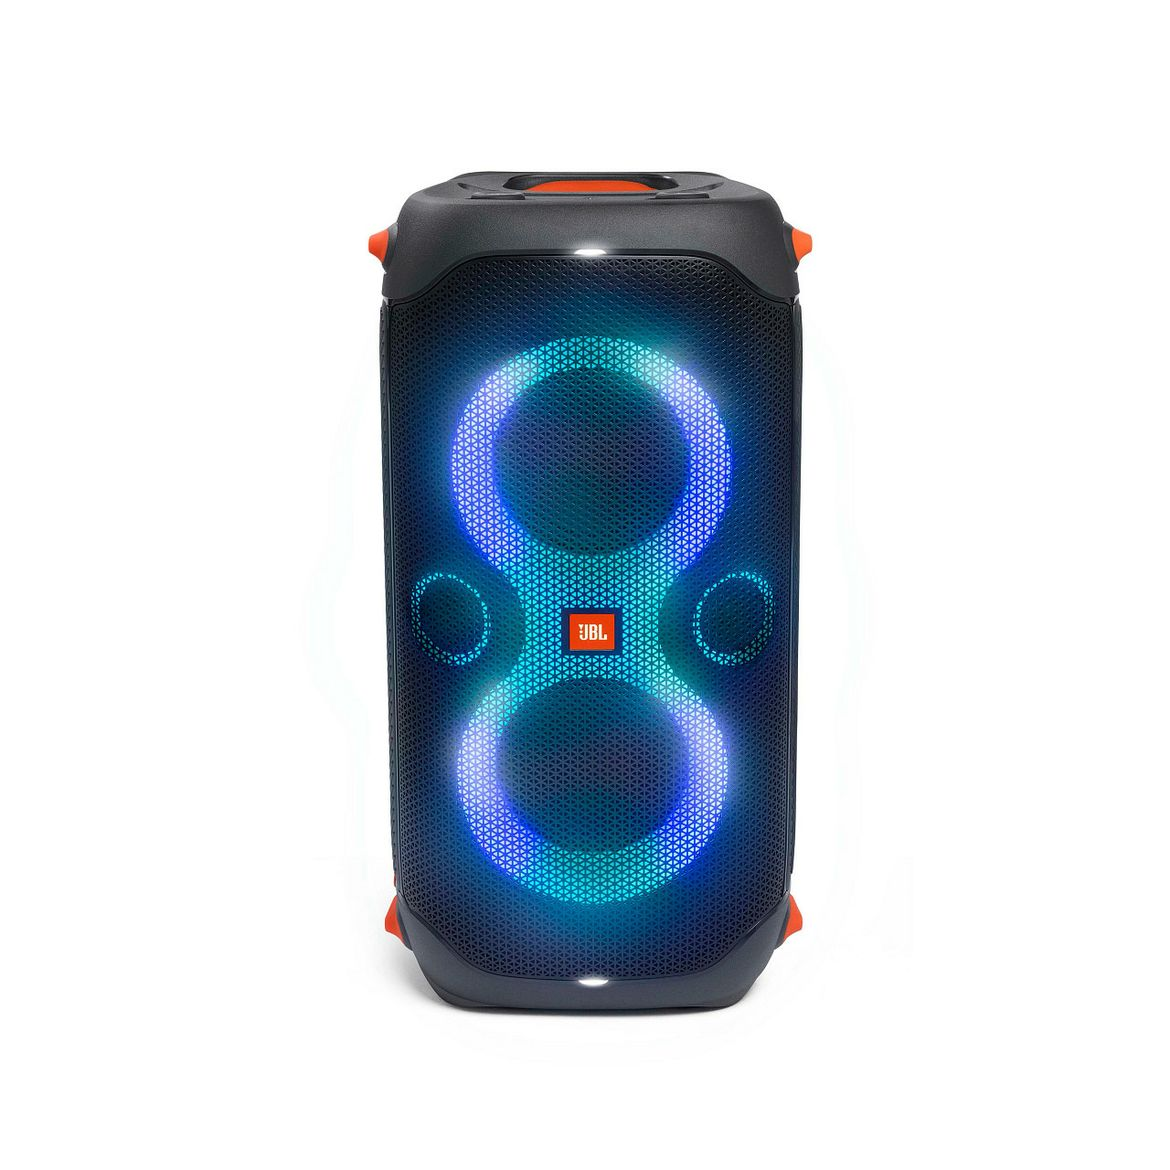 7. JBL_PARTYBOX_110_FRONT